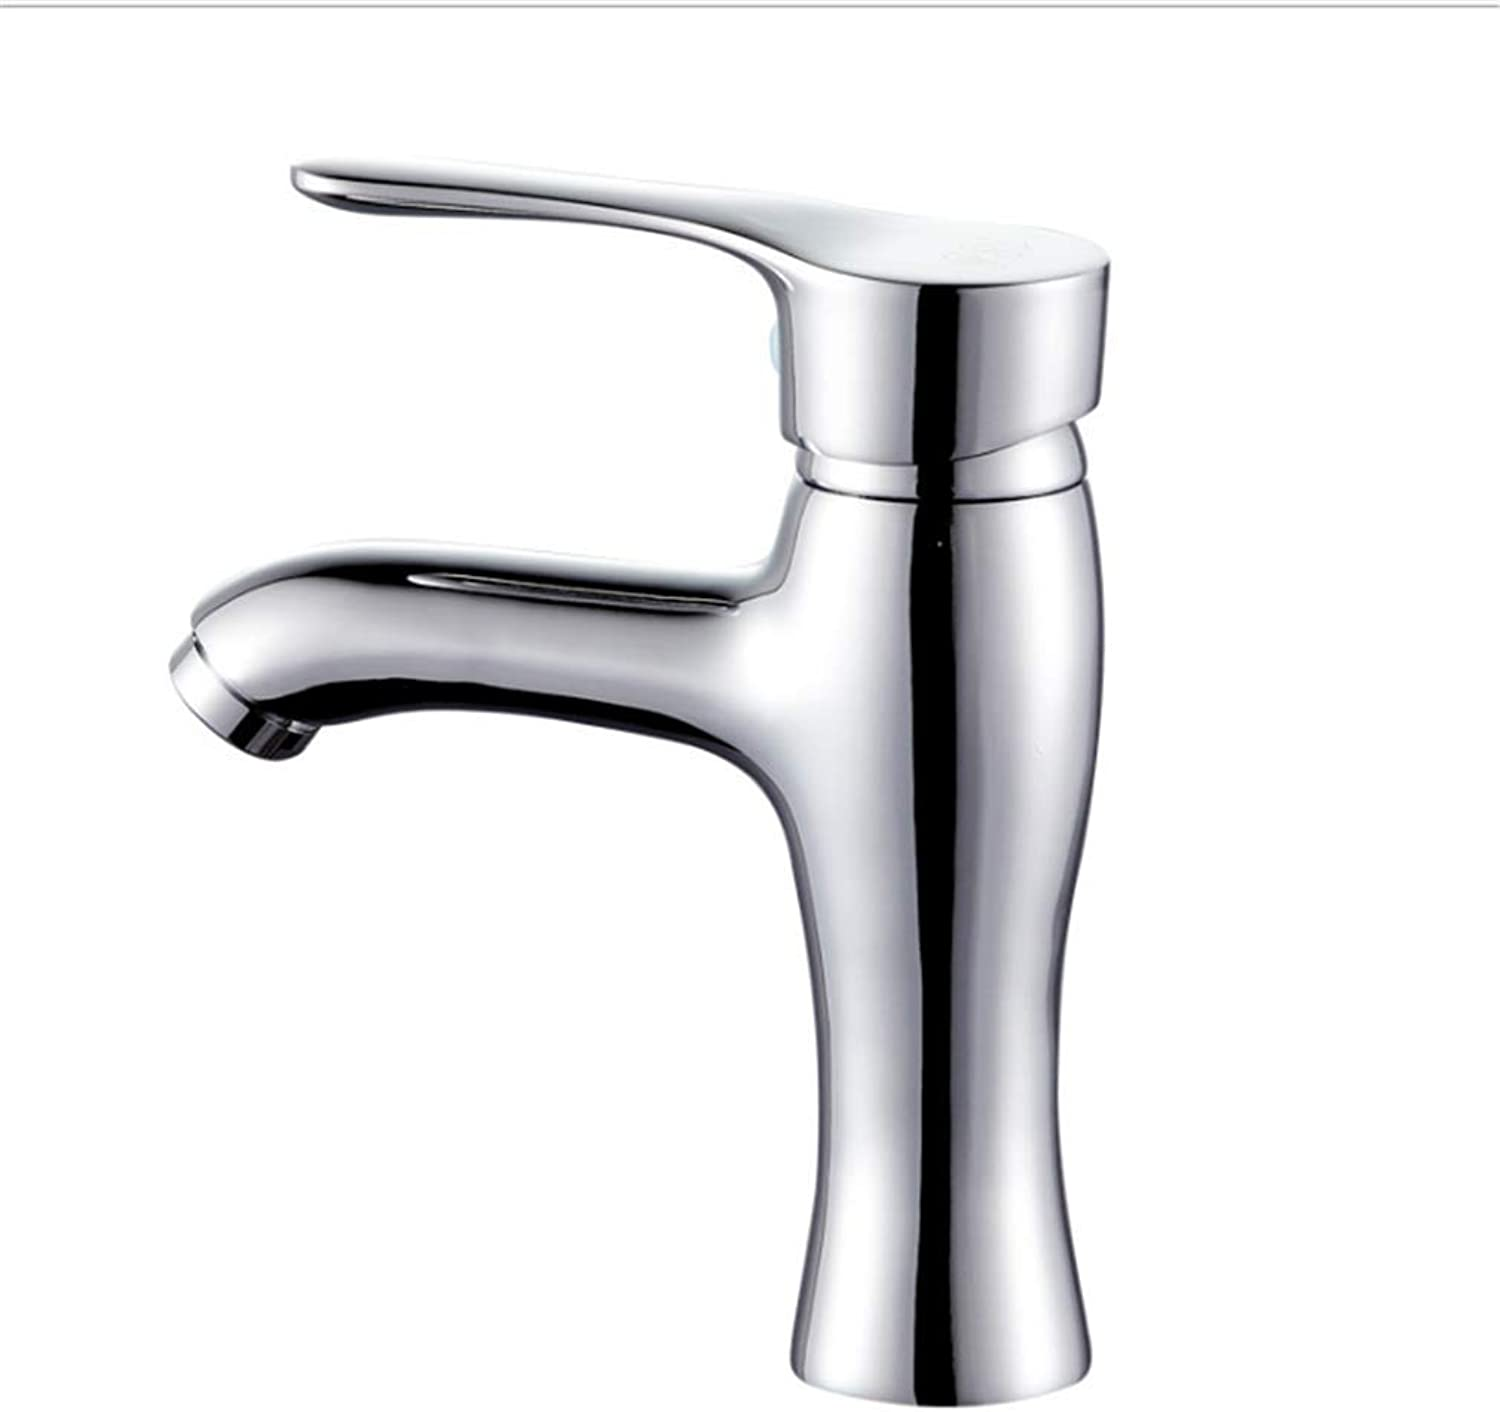 Kitchen Taps Faucet Modern Kitchen Sink Taps Stainless Steelface Basin Faucet Copper Face Basin Faucet Cold and Hot Water Faucet